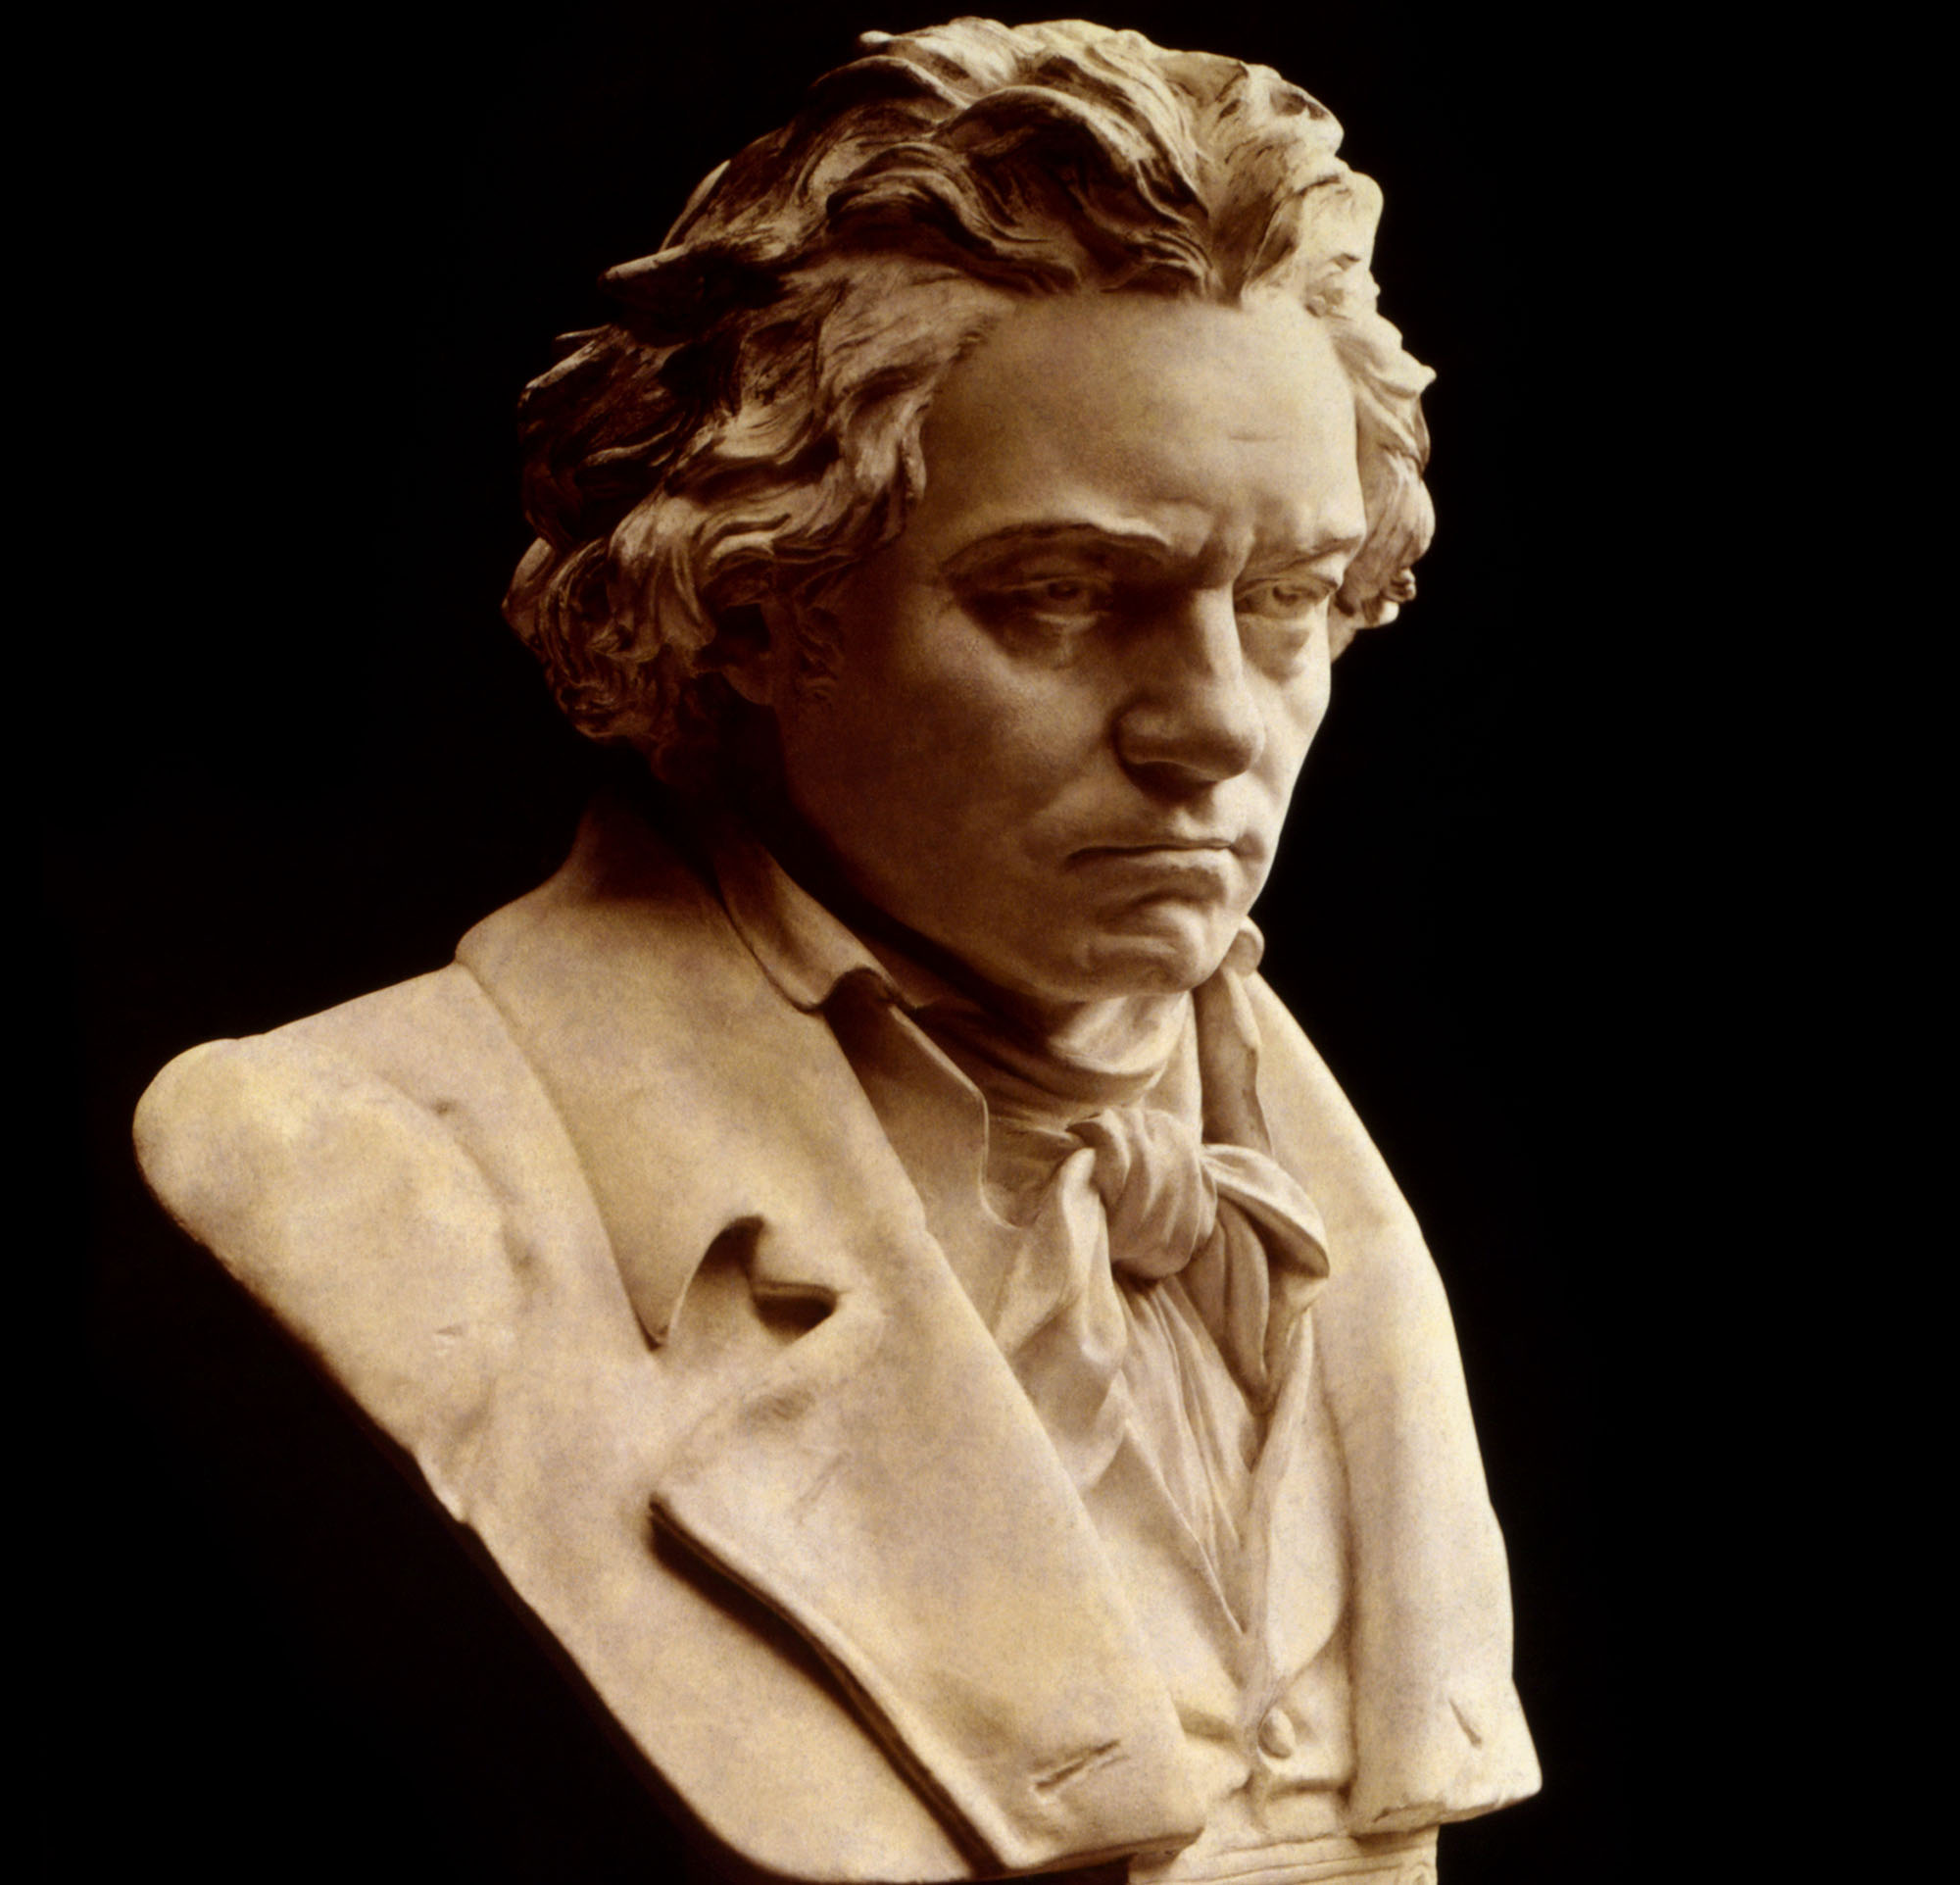 A bust of Beethoven. He looks sad and brooding.